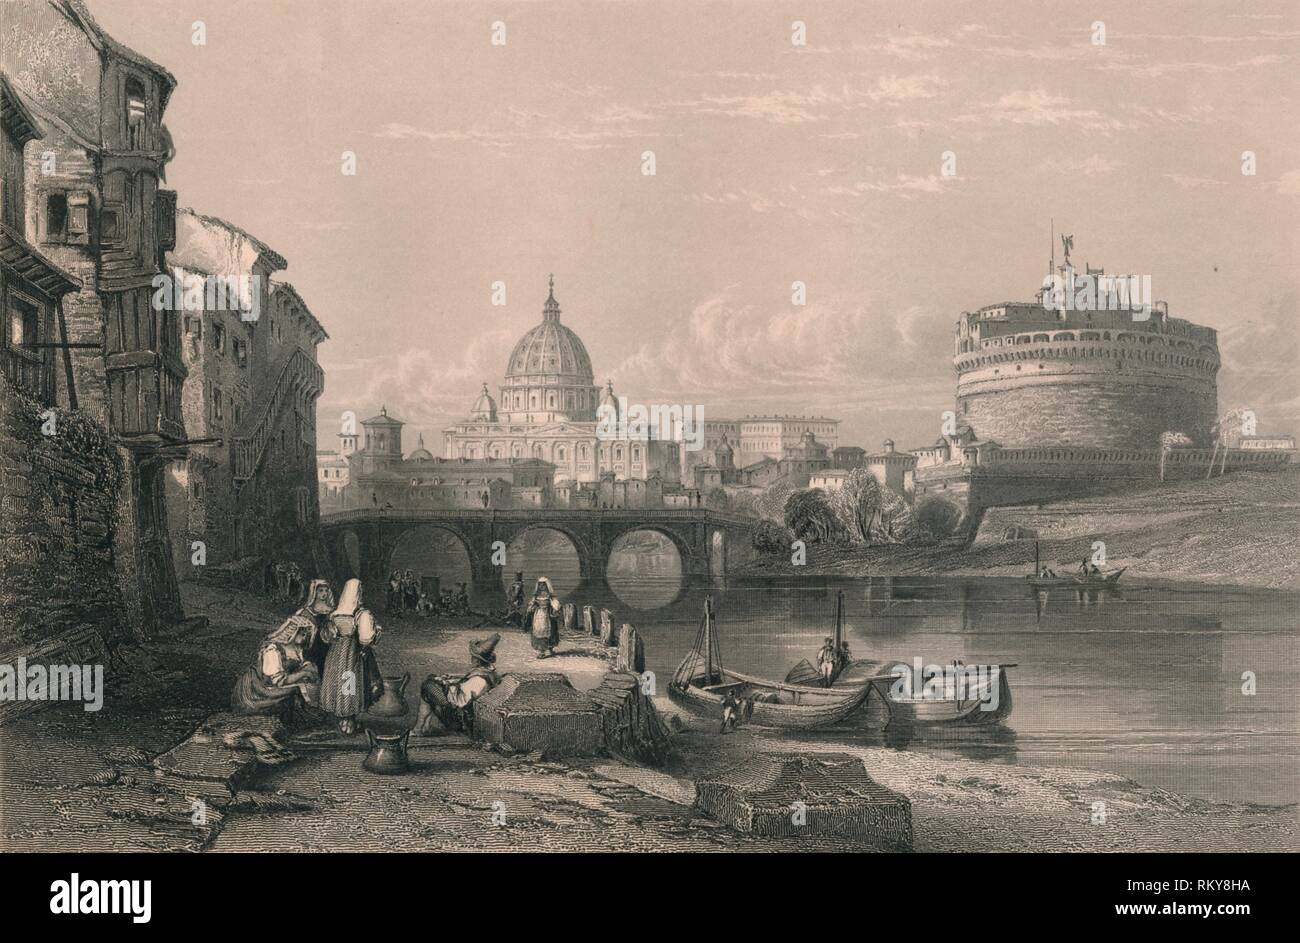 'Rome', 1820s. View of the city of Rome, Italy, with women in traditional costume on the banks of the River Tiber in the foreground. Beyond is the Aelian Bridge, the dome of St Peter's Basilica (centre), and Castel Sant'Angelo on the right. [Fisher, Son & Co., London & Paris] - Stock Image